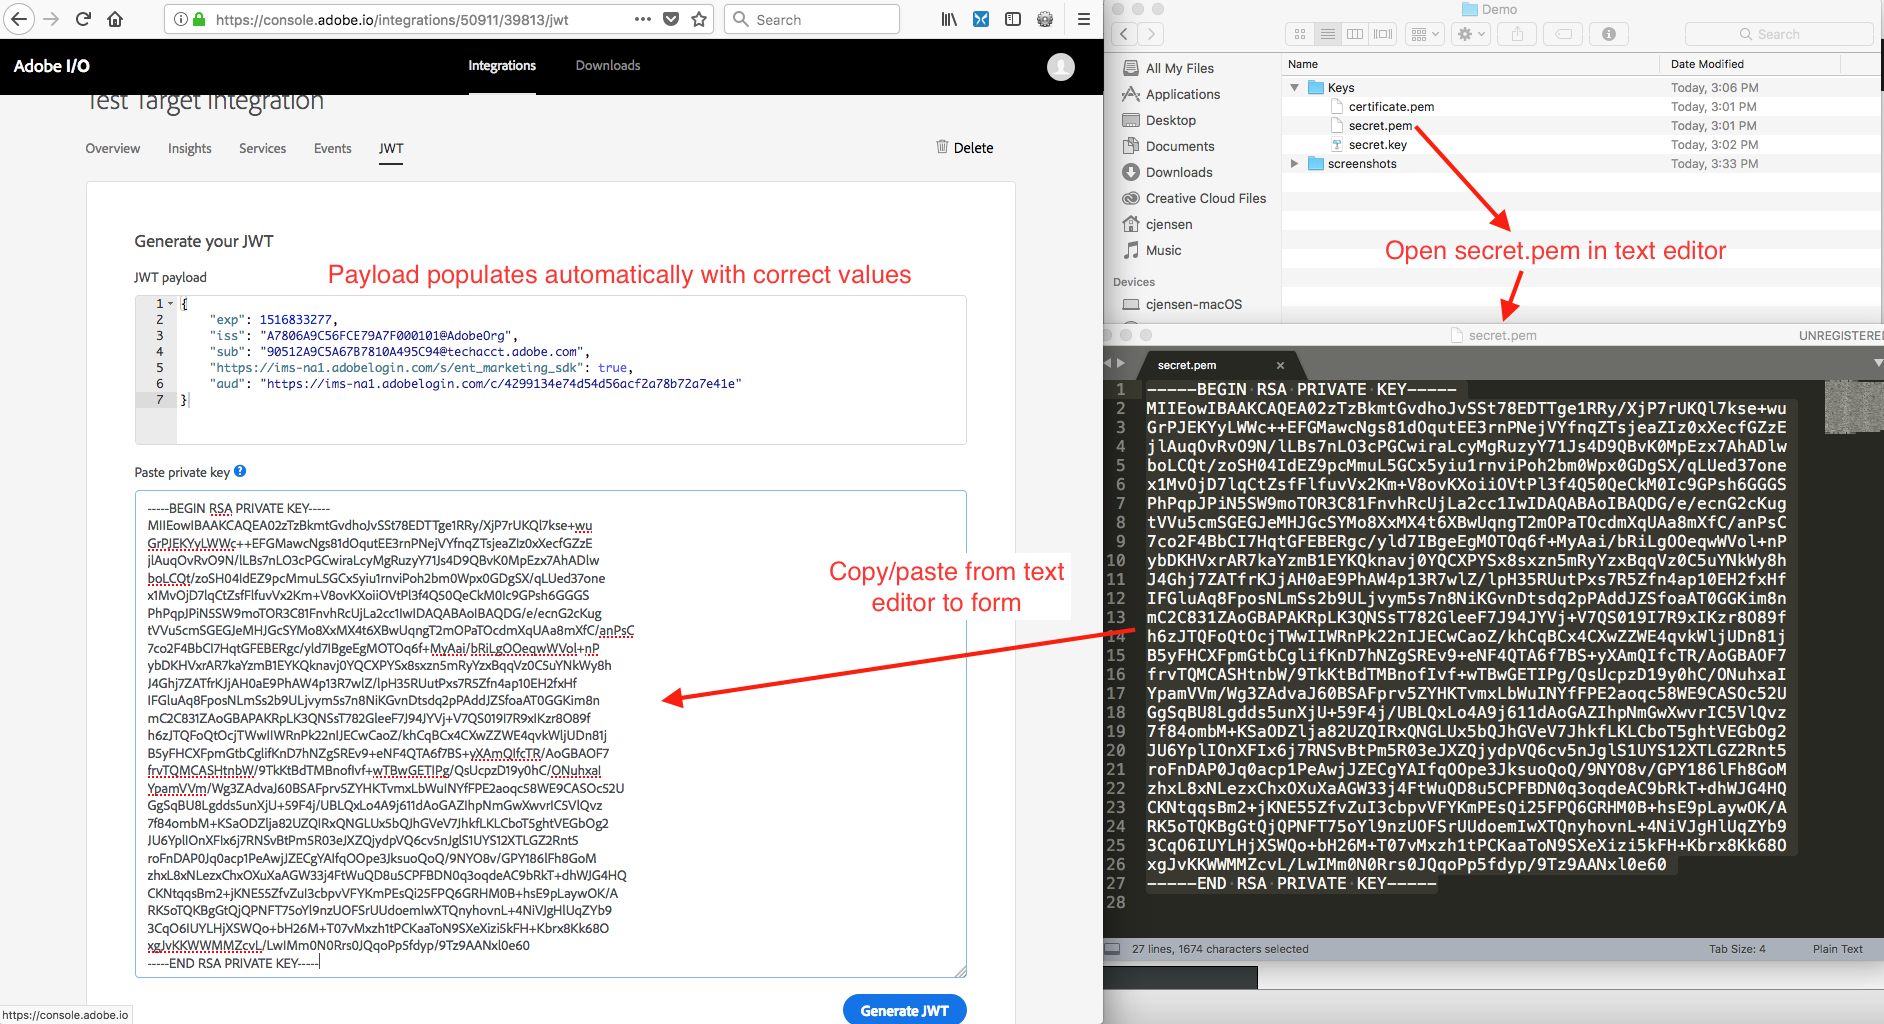 How to set up Adobe IO: Authentication - Step by Step